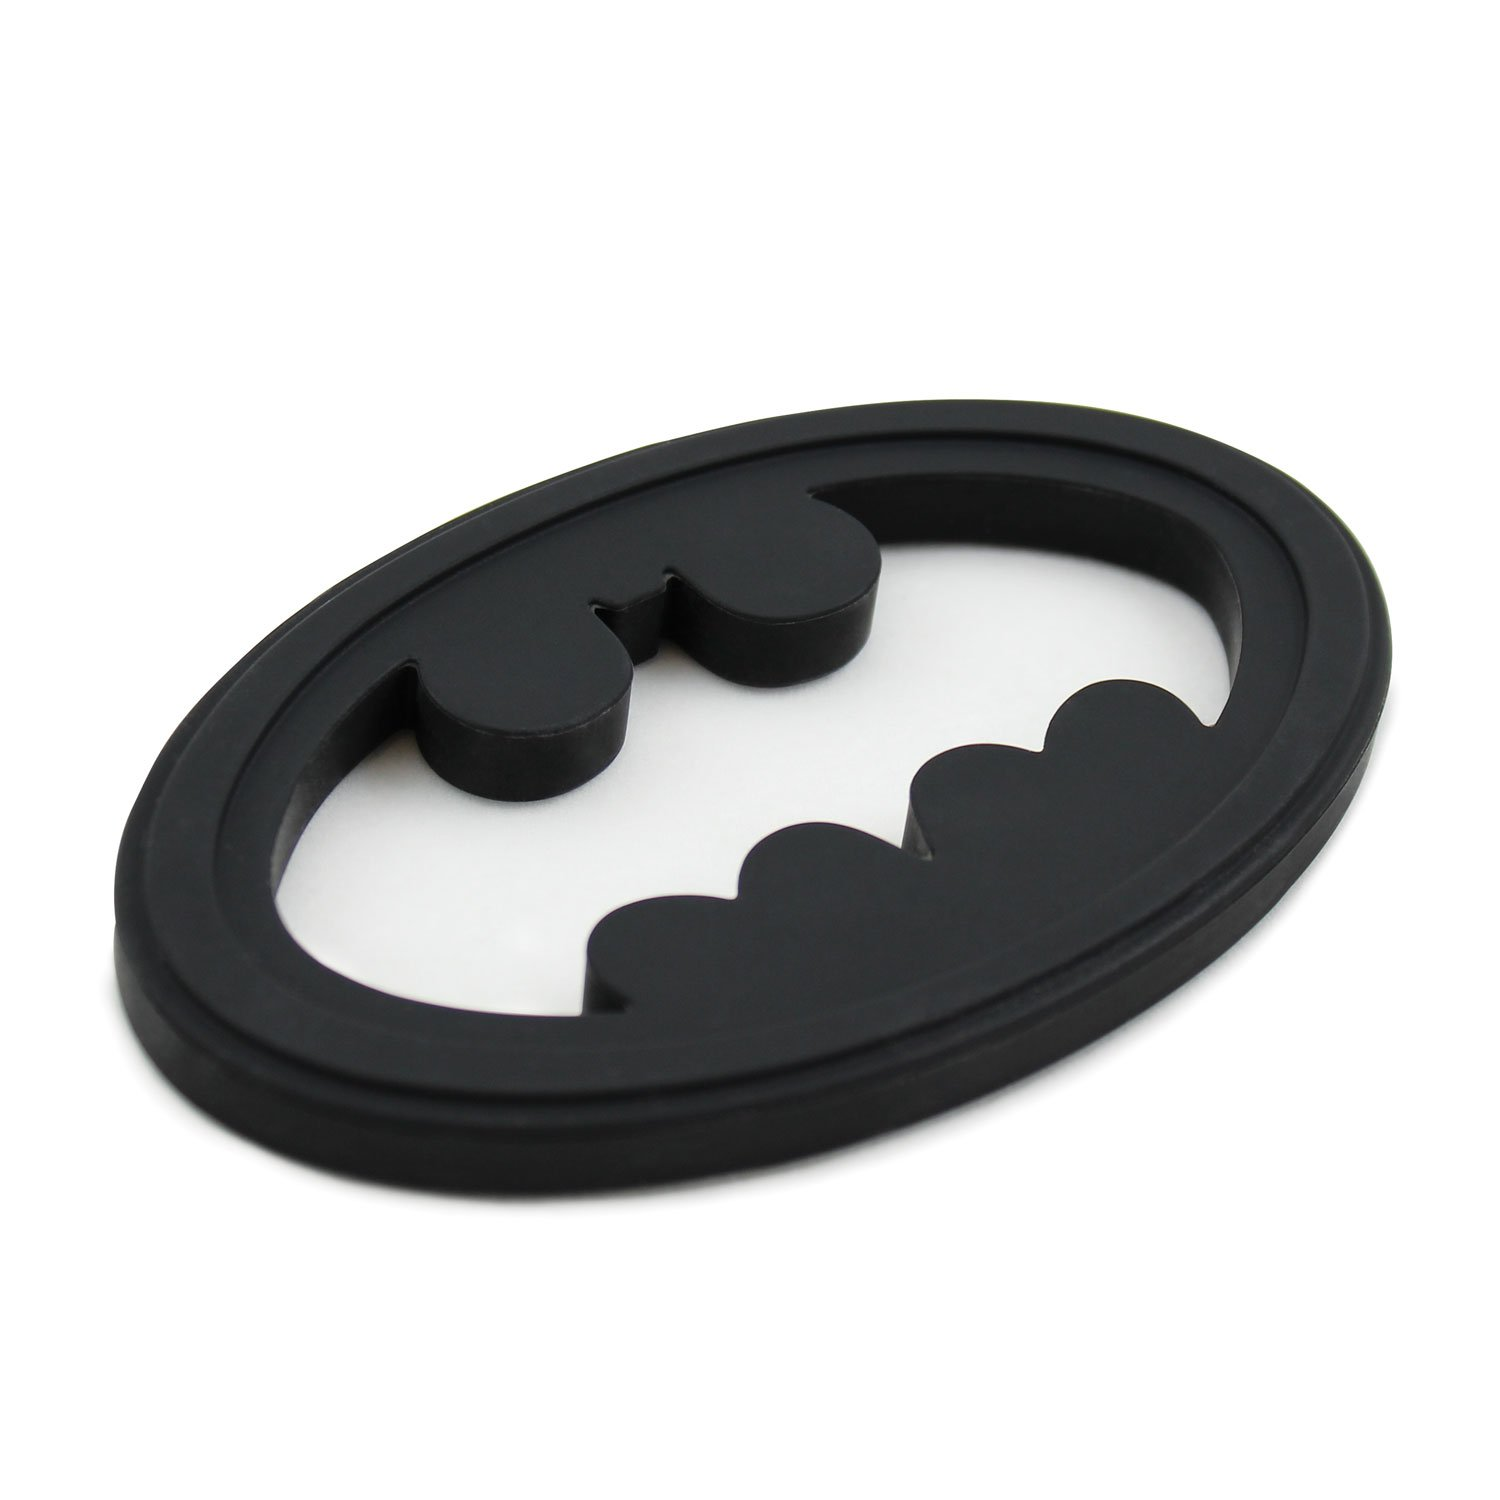 Bumkins DC Comics Teether - Batman, BK306 THR-WBBM